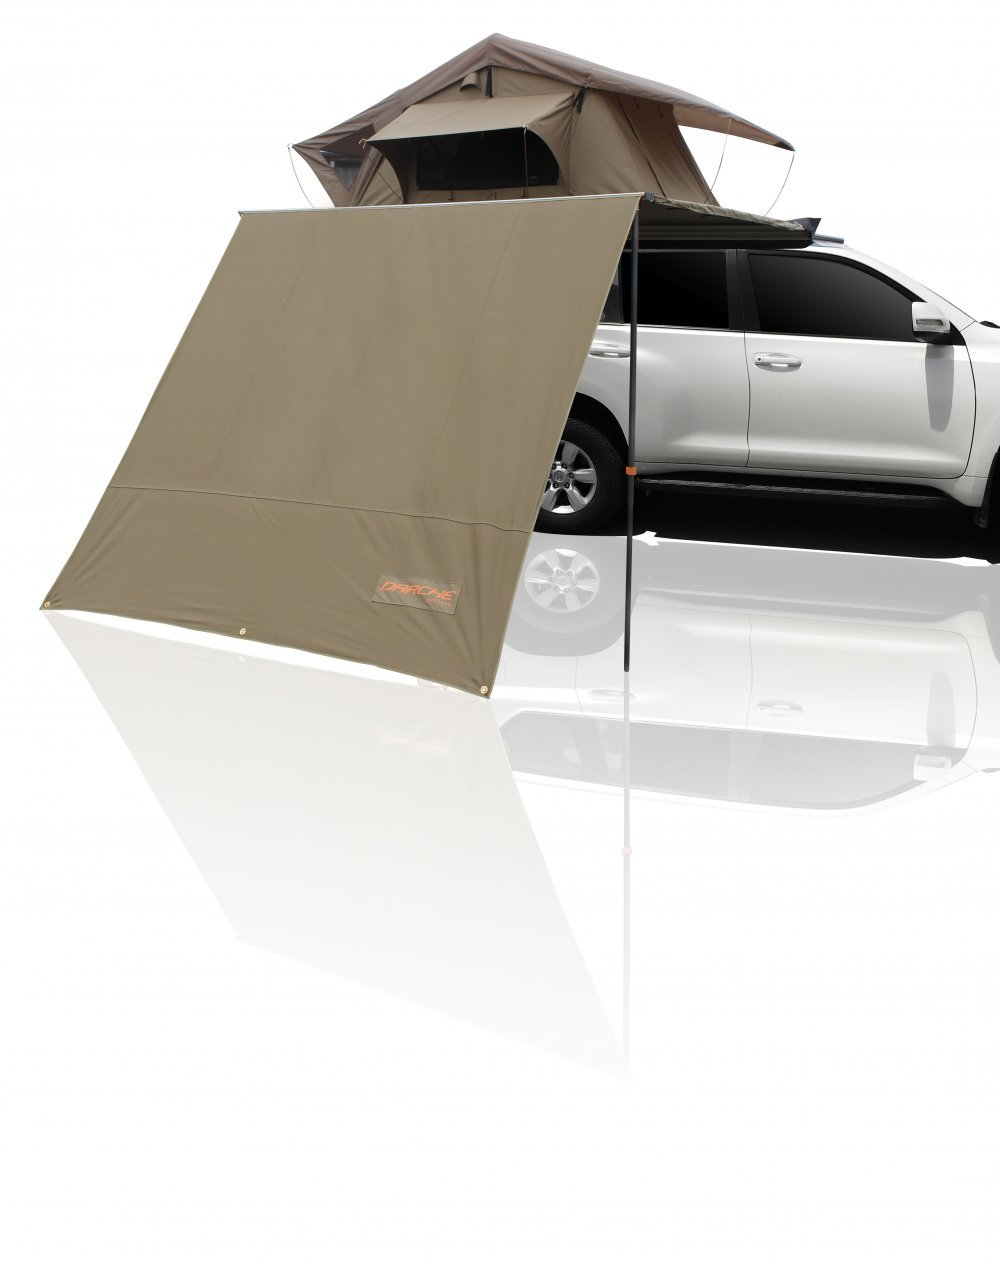 Eclipse Ezy Awning Extension (fits 2.5m wide awning)